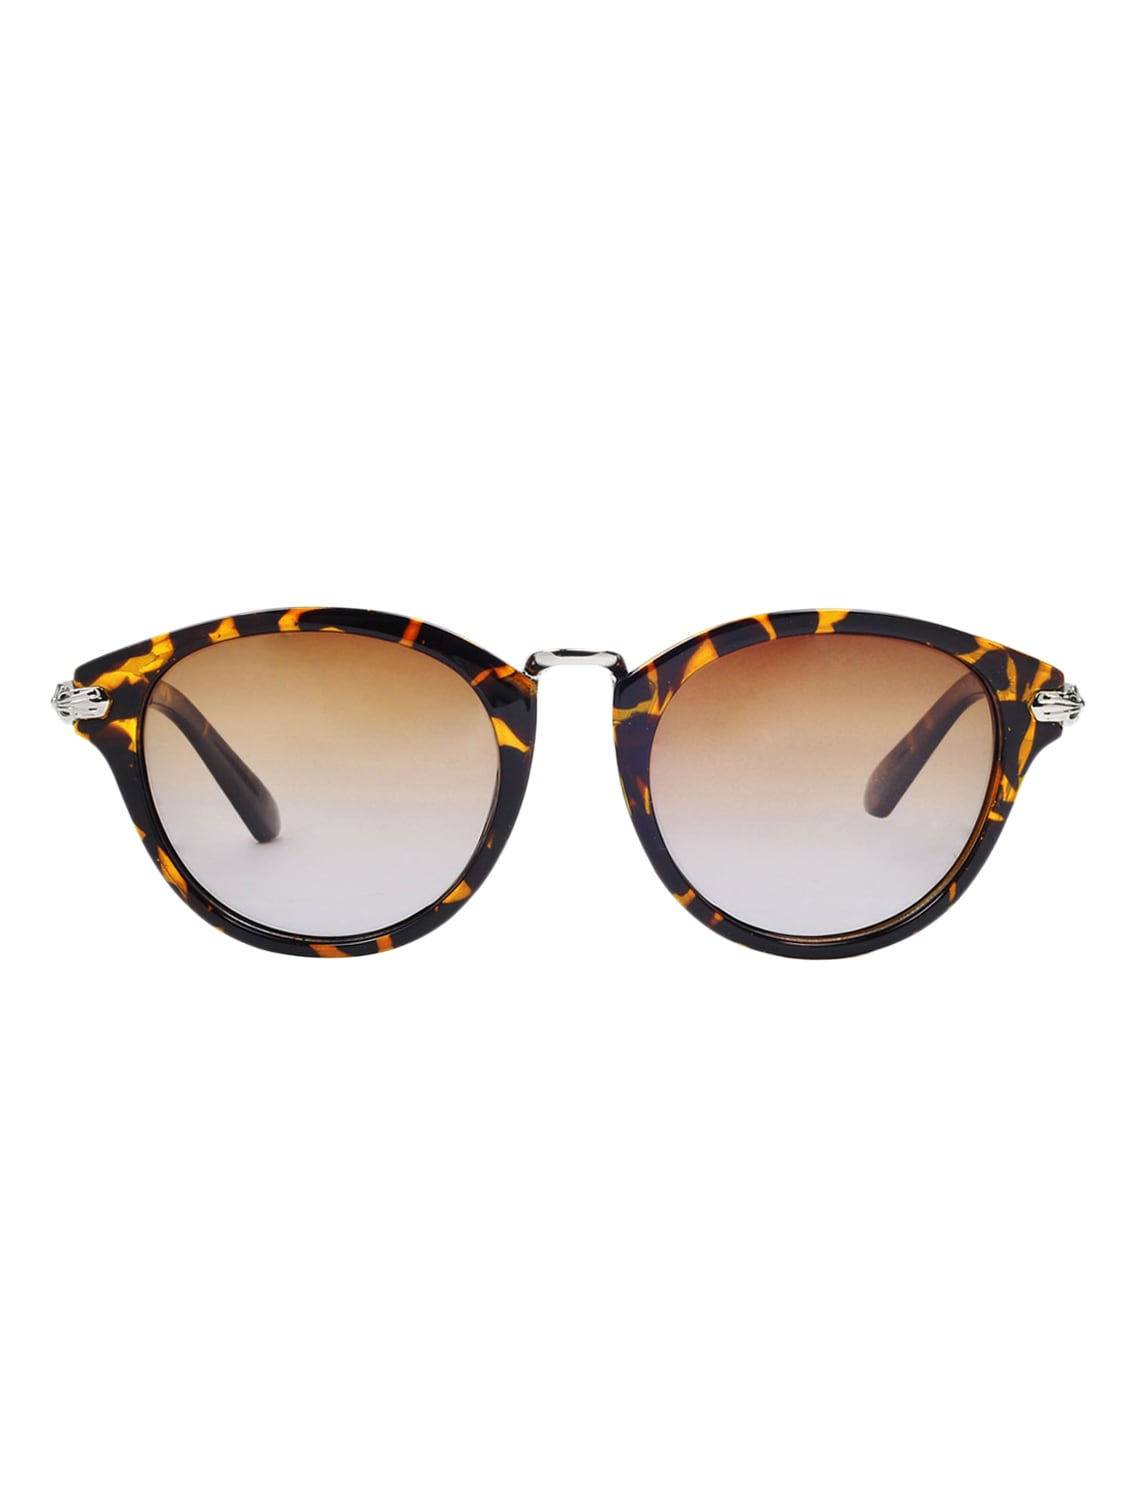 5f7e2fb02f Buy Hawai Round Sunglasses by Hawai - Online shopping for Sunglasses ...